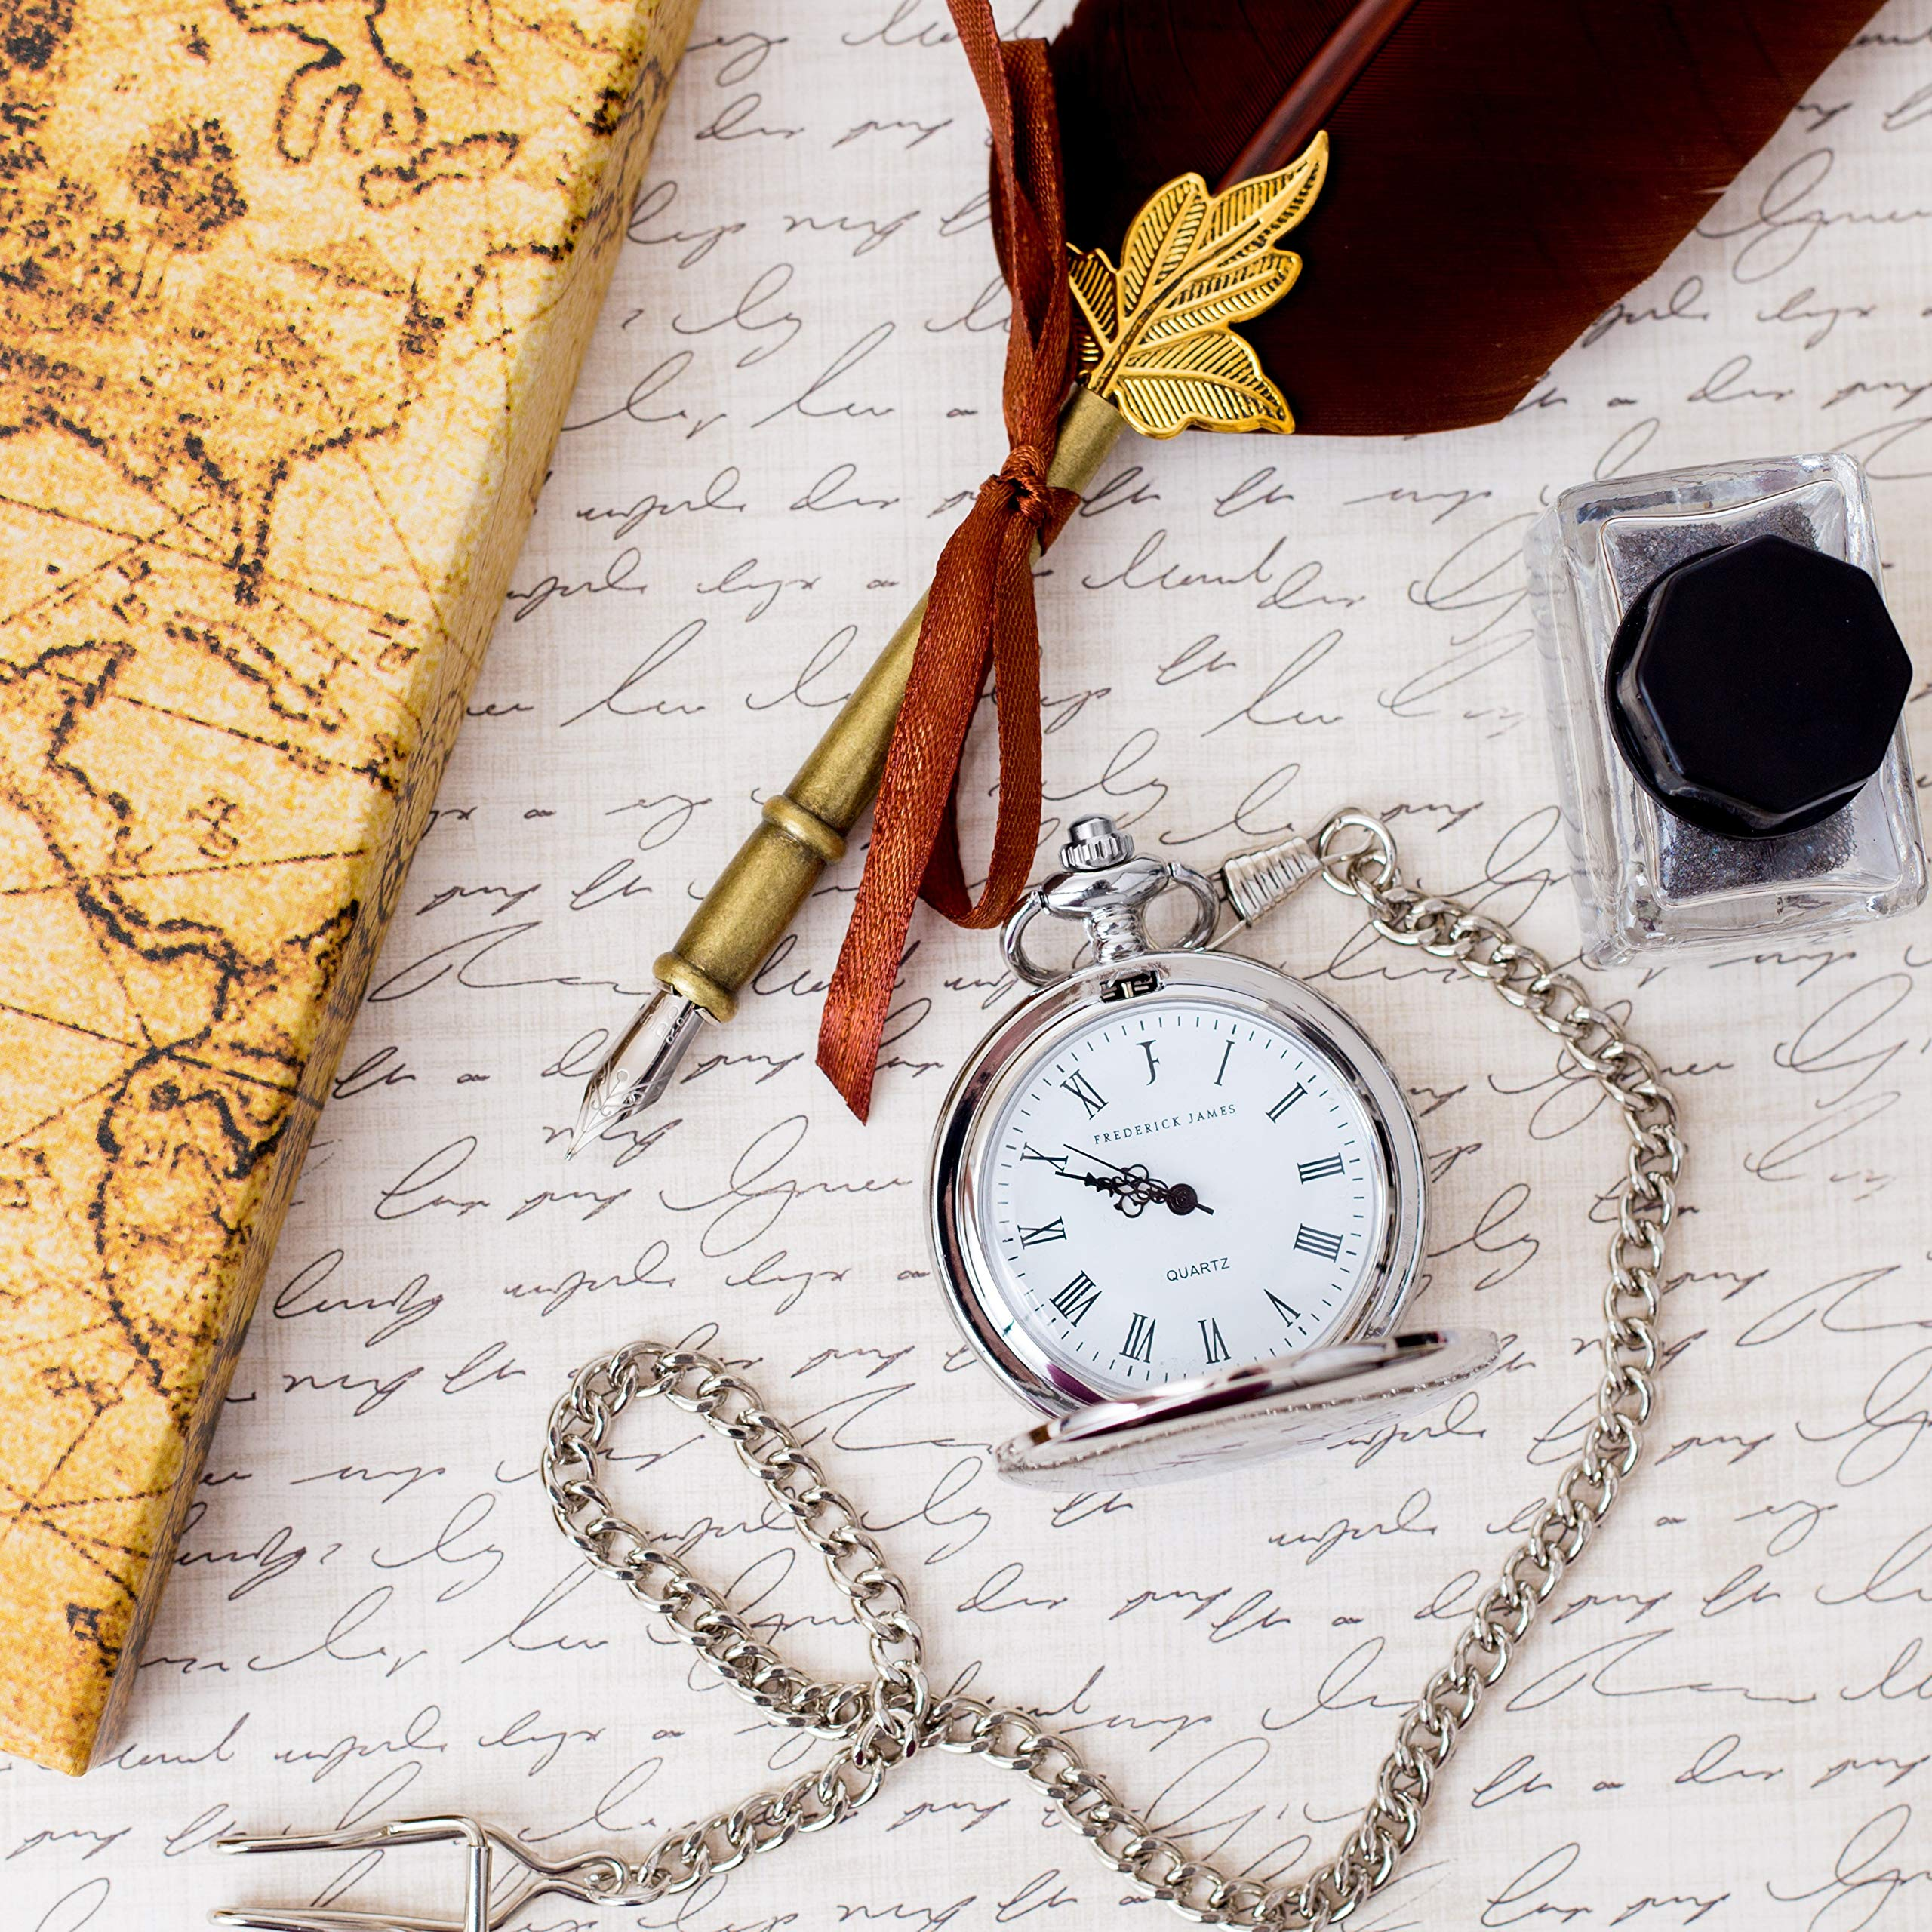 Graduation Gifts for Him - Pocket Watch - Engraved 'Class of 2019' - Perfect College / High School Graduation Gift or Present for Son | Him in 2019 by FREDERICK JAMES (Image #7)